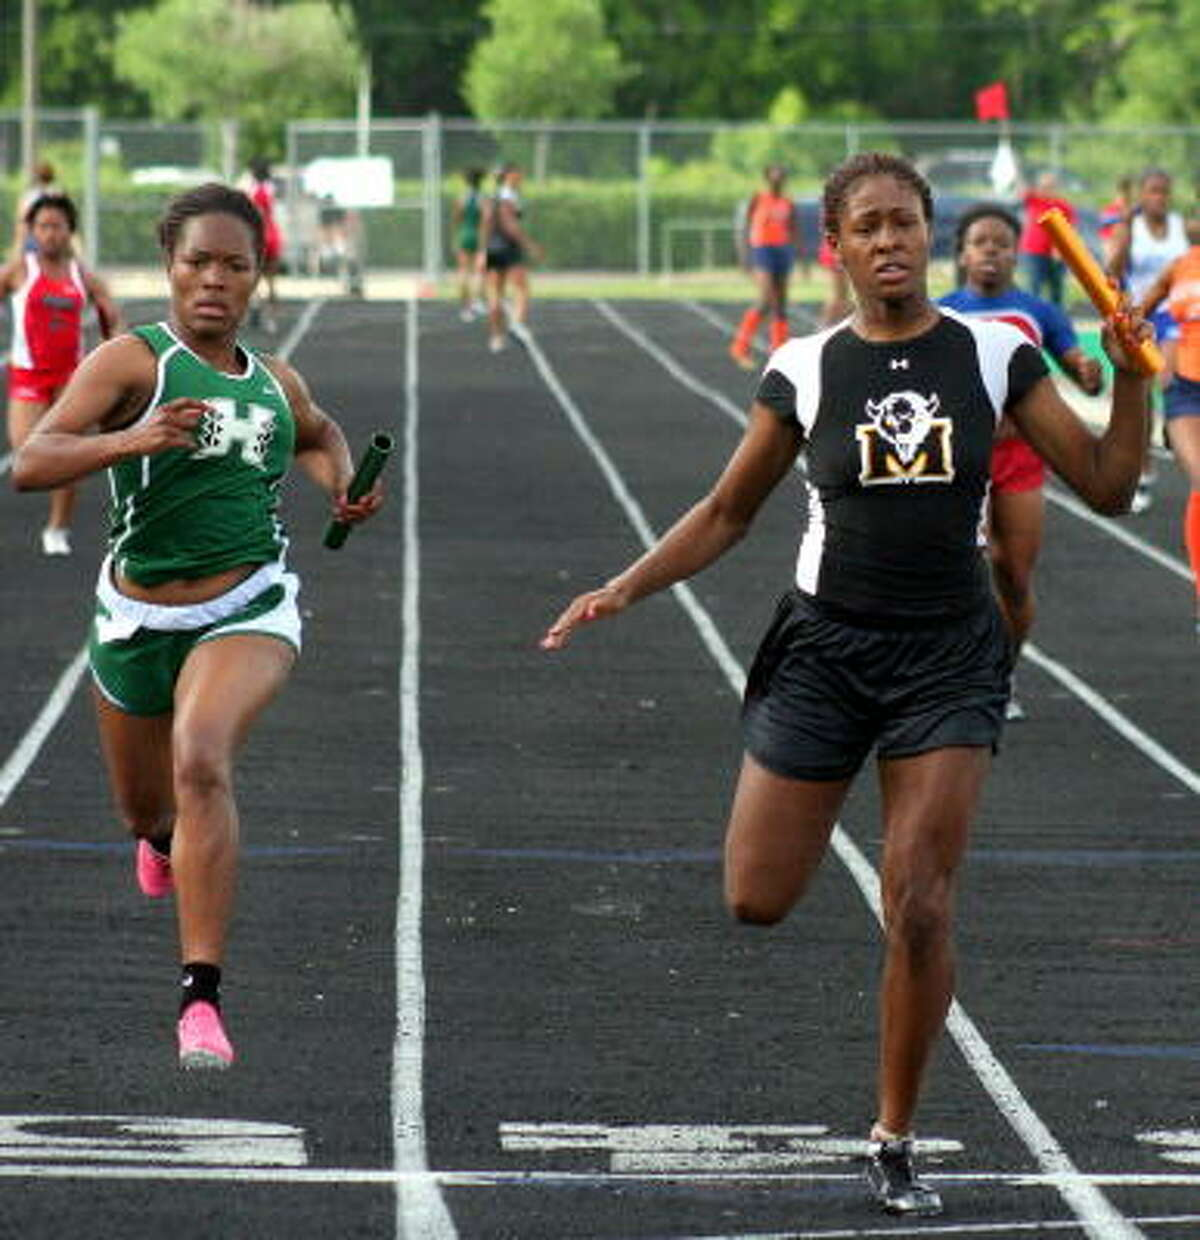 Marshall's Jhorden Hunter, right, edges Hightower's Franchelle Hill to help her team win gold in the 400-meter relay.